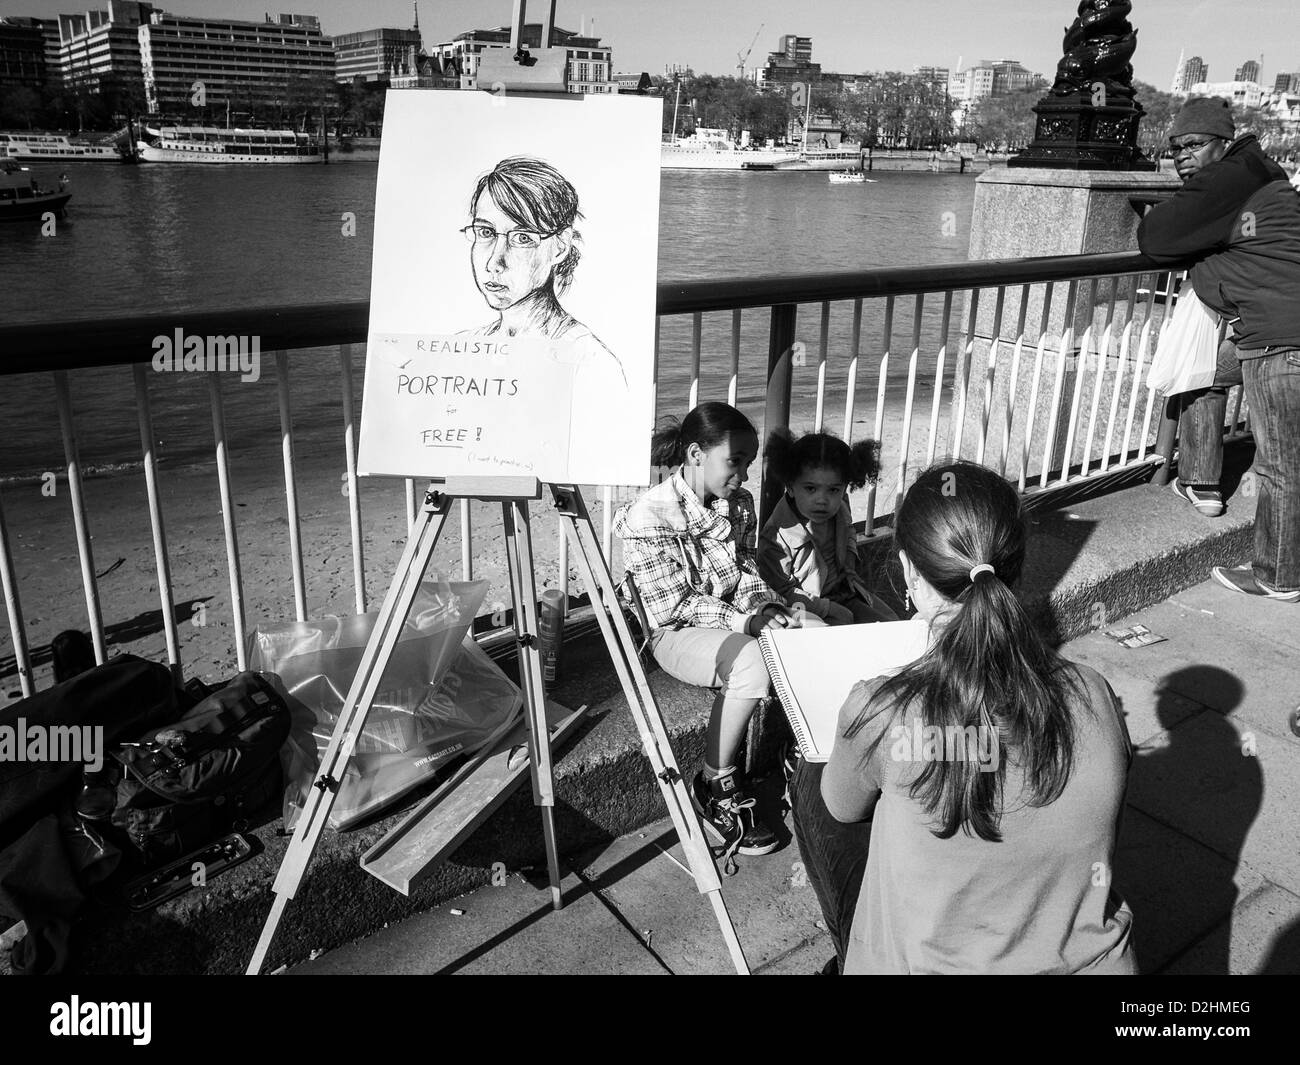 street painter in sunny day on Thames bank near National Theater in London - Stock Image